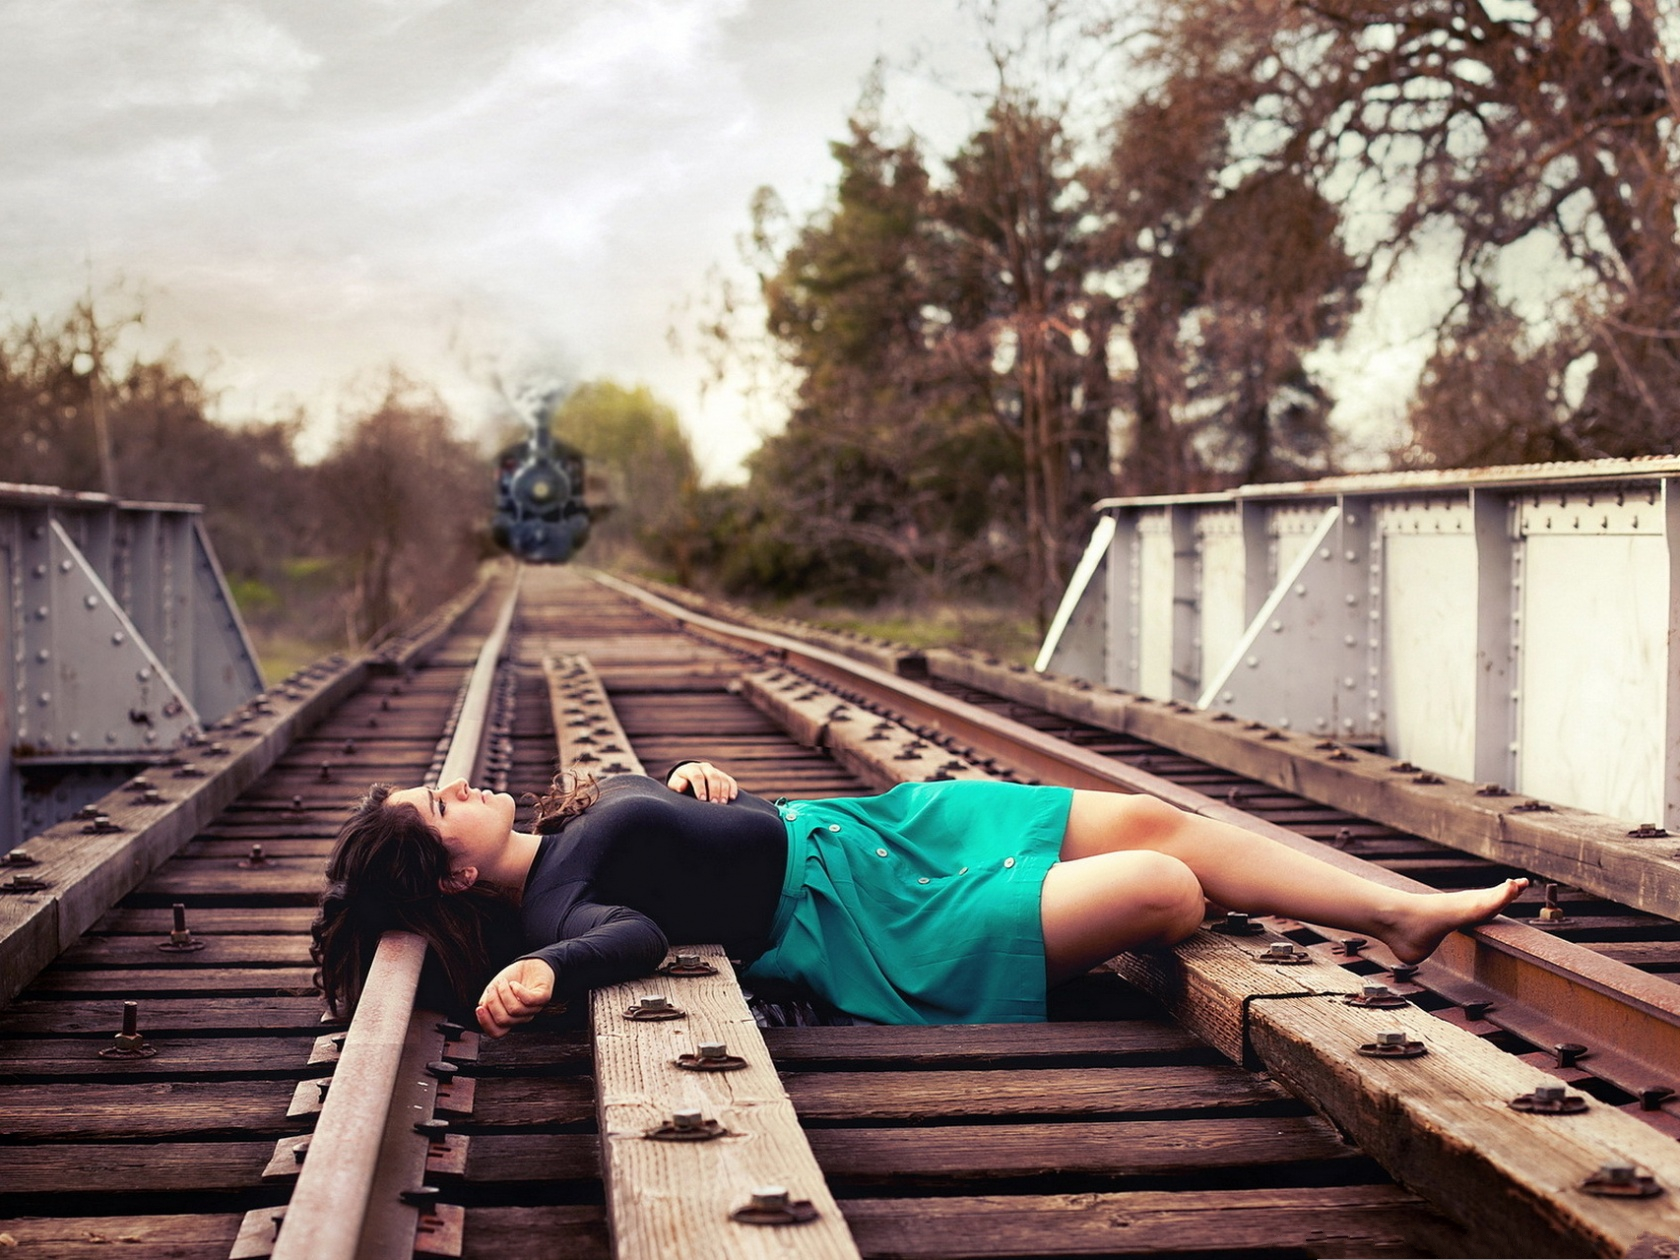 Indian Sad Girl Wallpaper Suicide By Train On The Rise In Florida